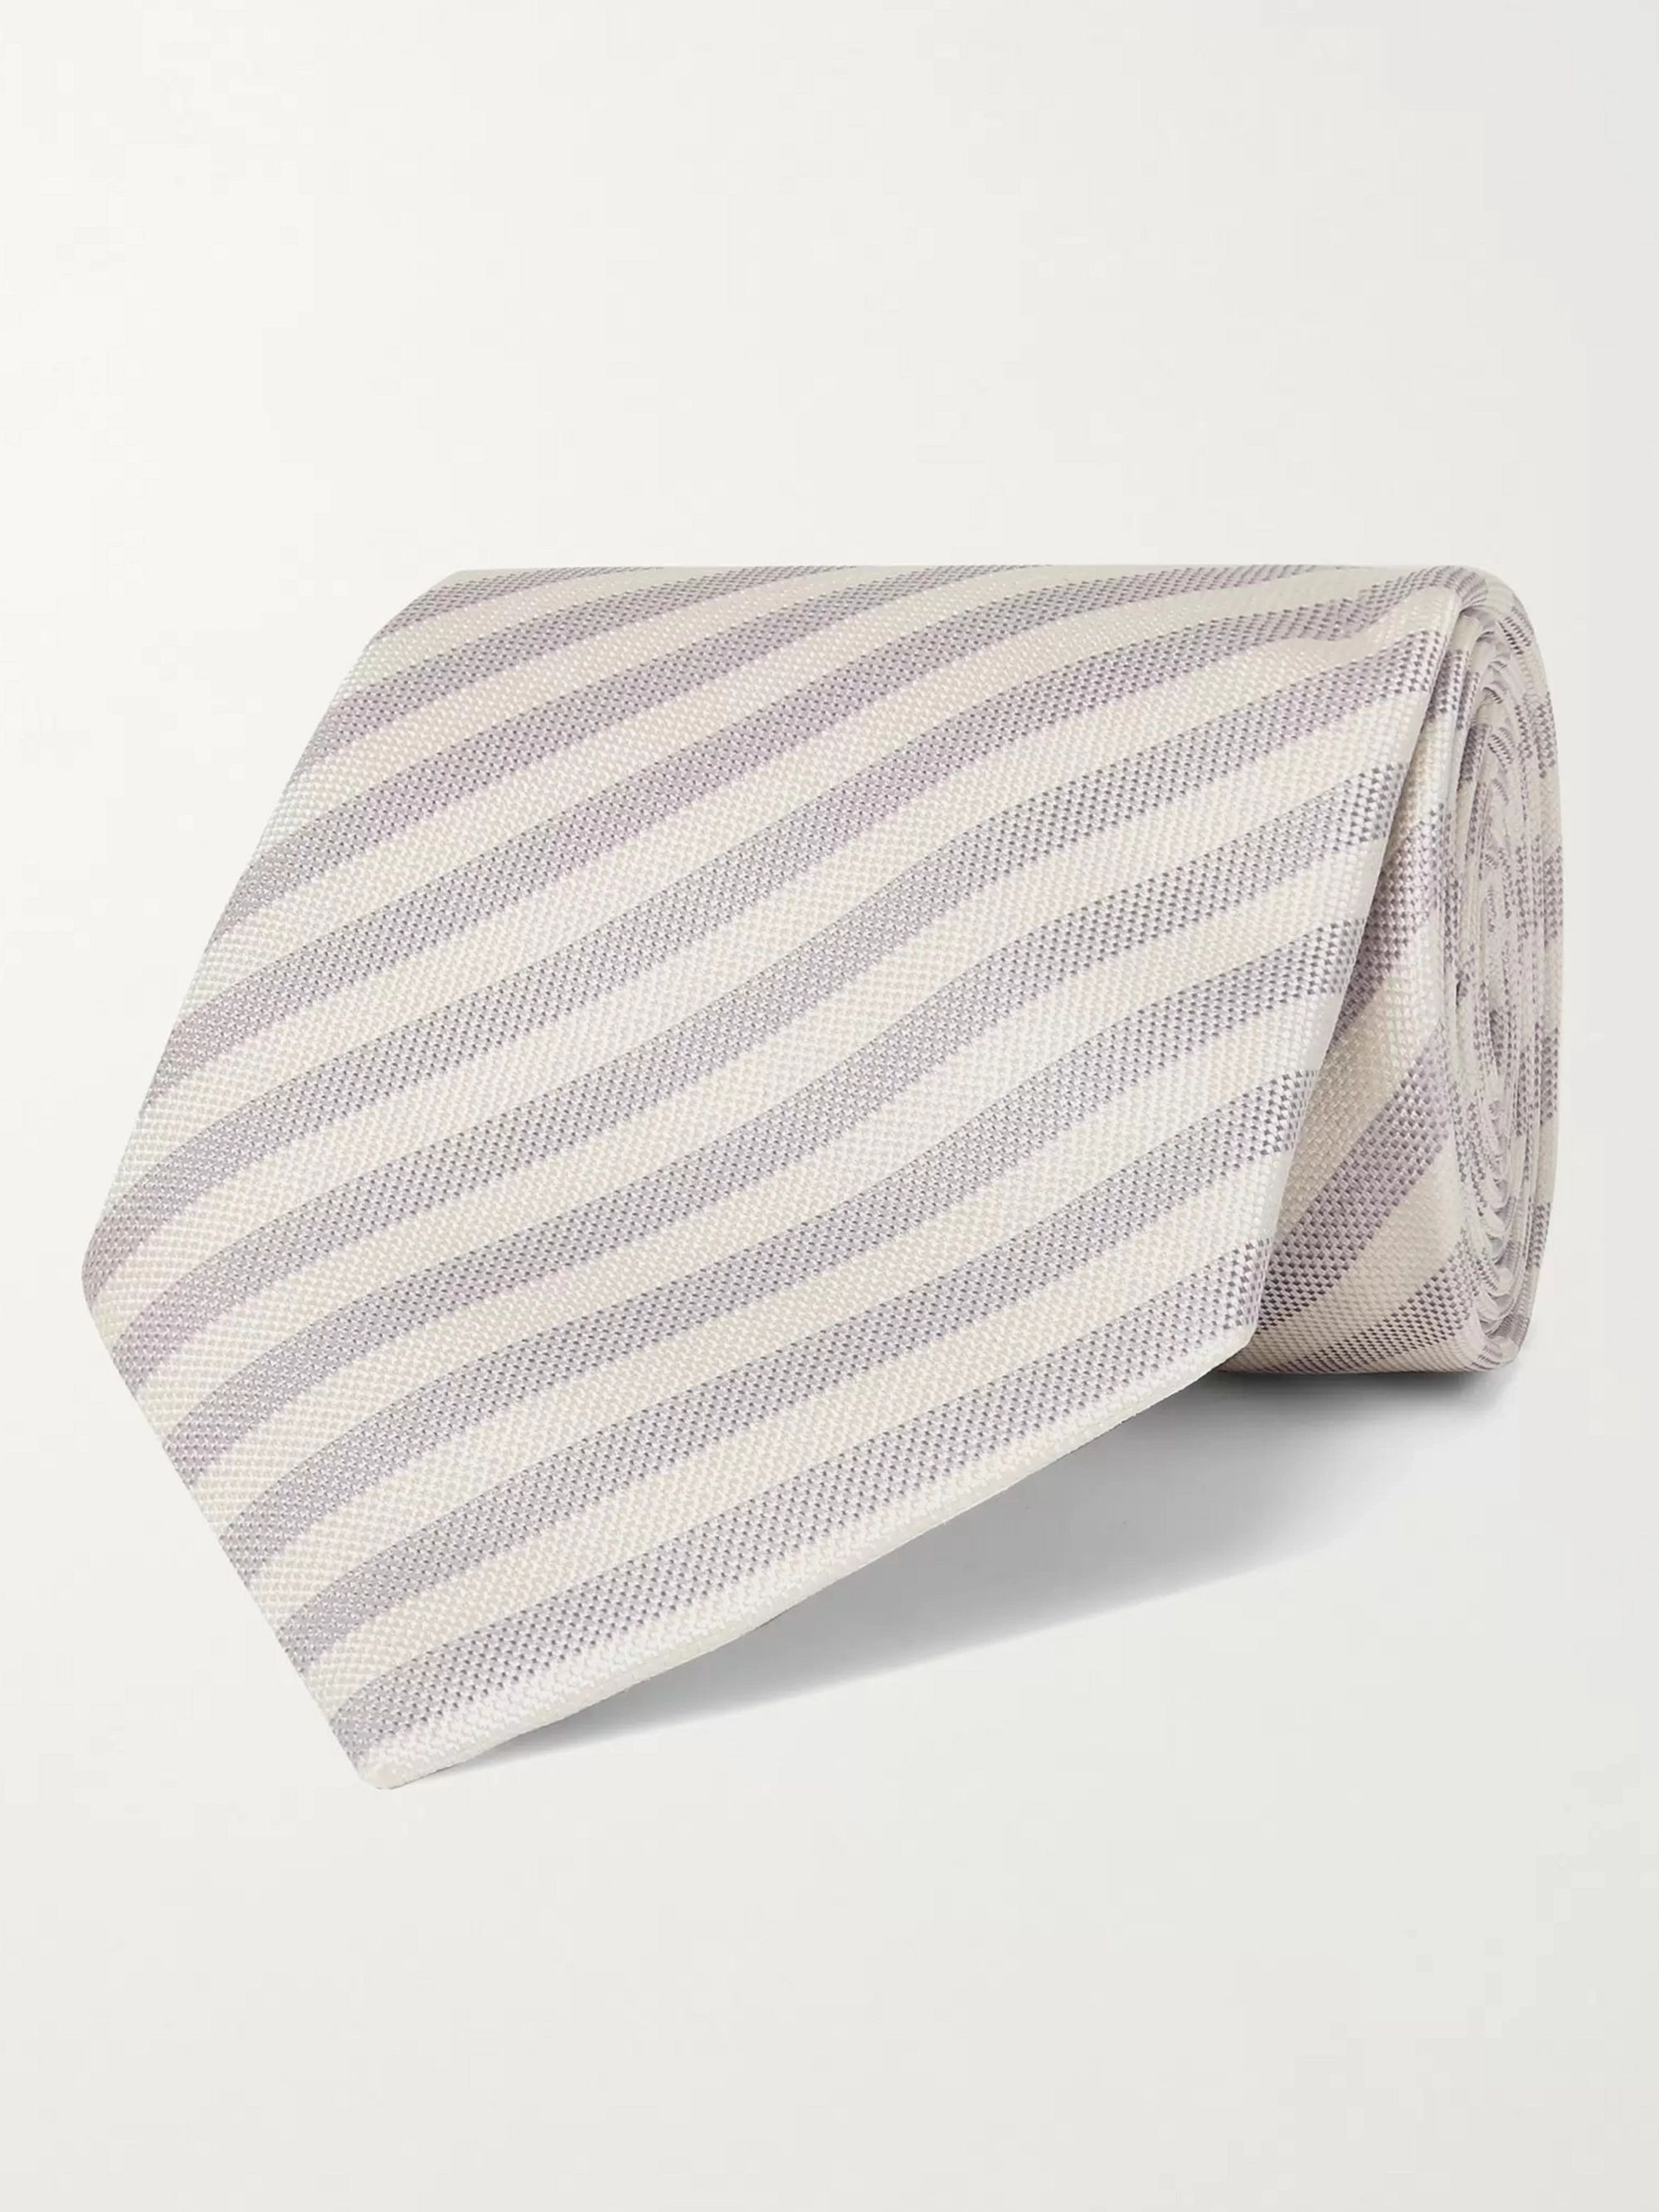 폴 스미스 Paul Smith 8cm Striped Silk Tie,Lilac